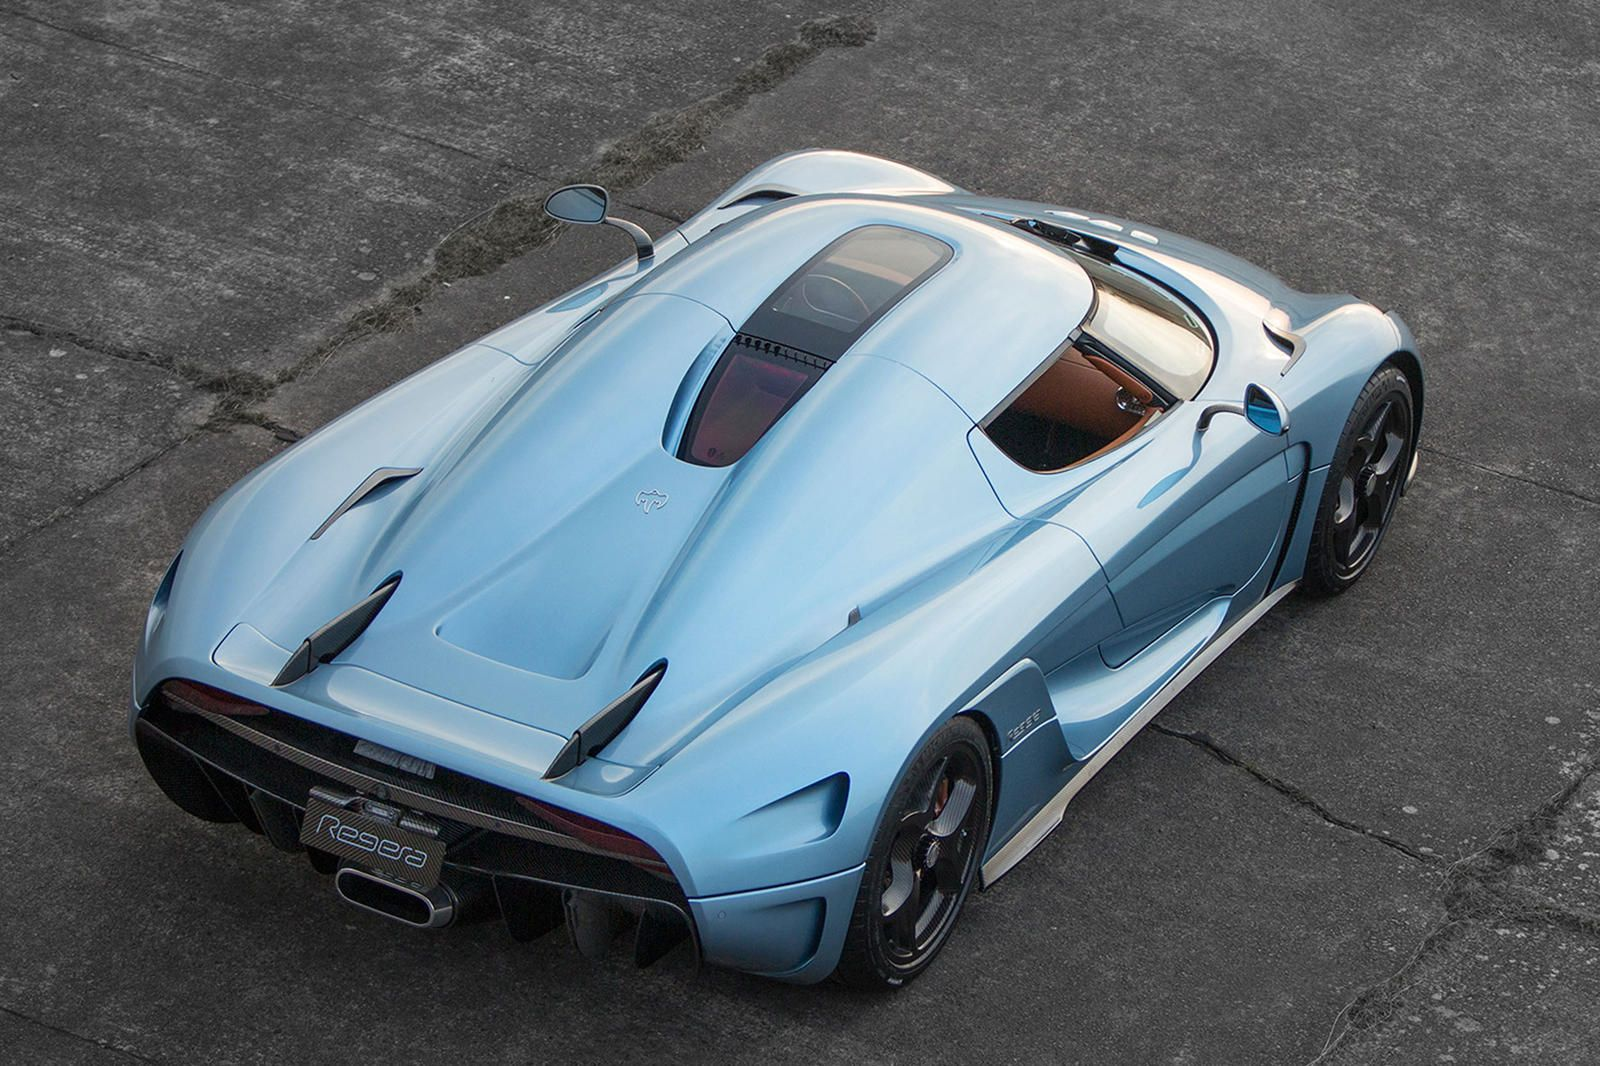 Koenigsegg Customers Will Soon Get To Drive The Regera. It's been nearly half a decade since the hybrid hypercar was revealed.